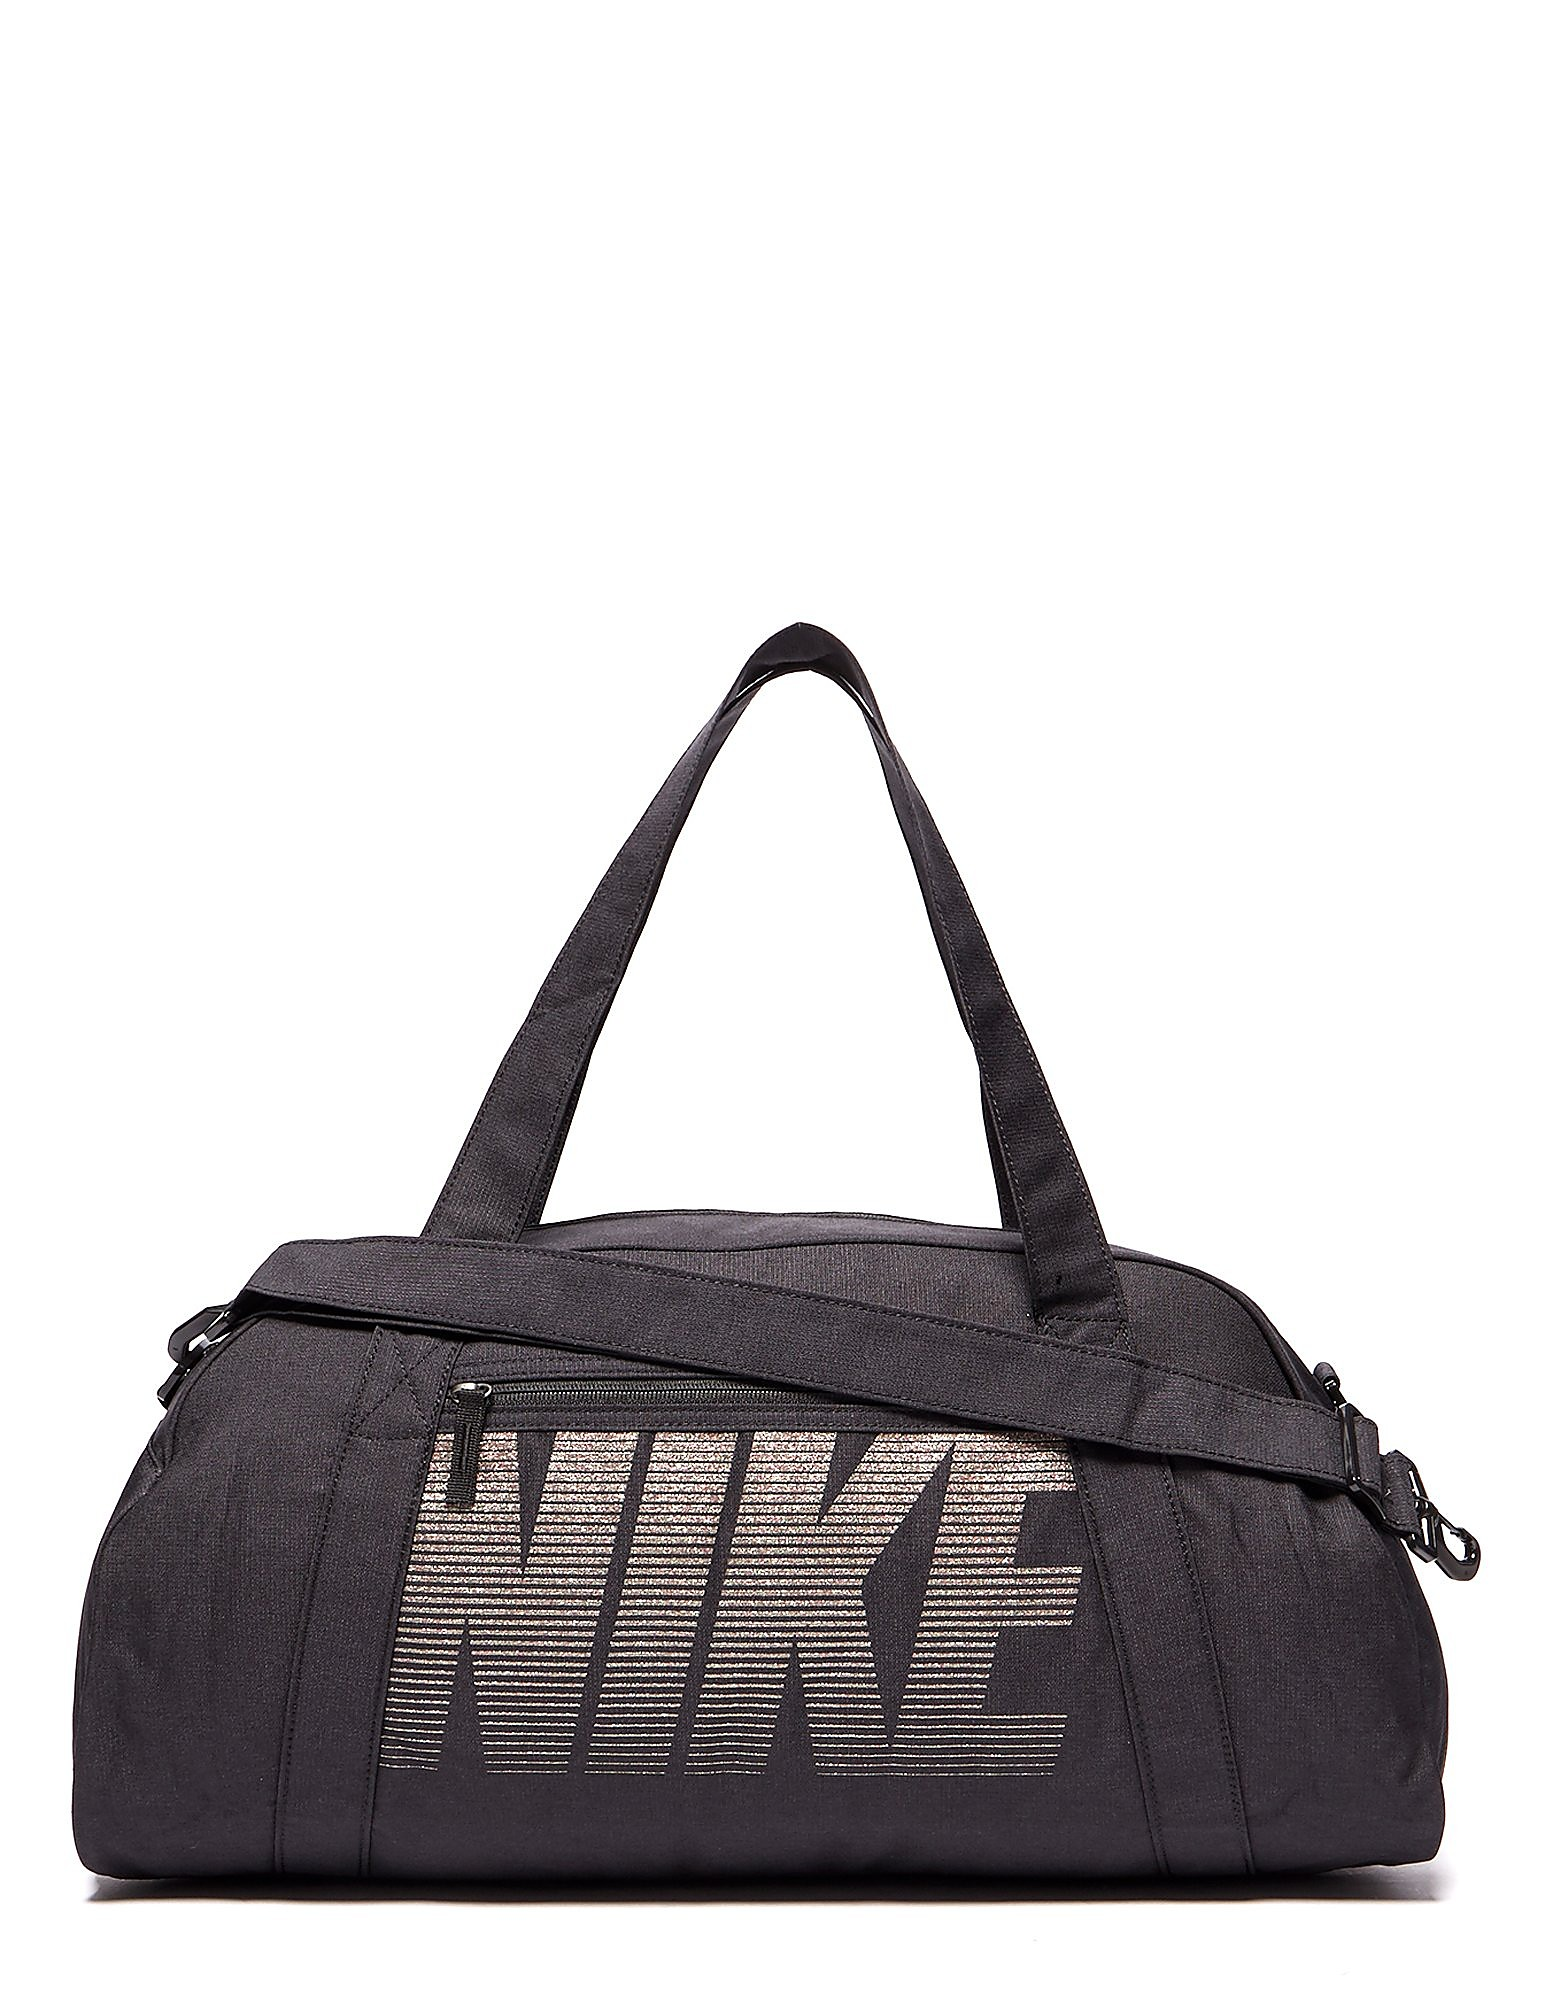 Nike bolsa de gimnasio Gym Club Training